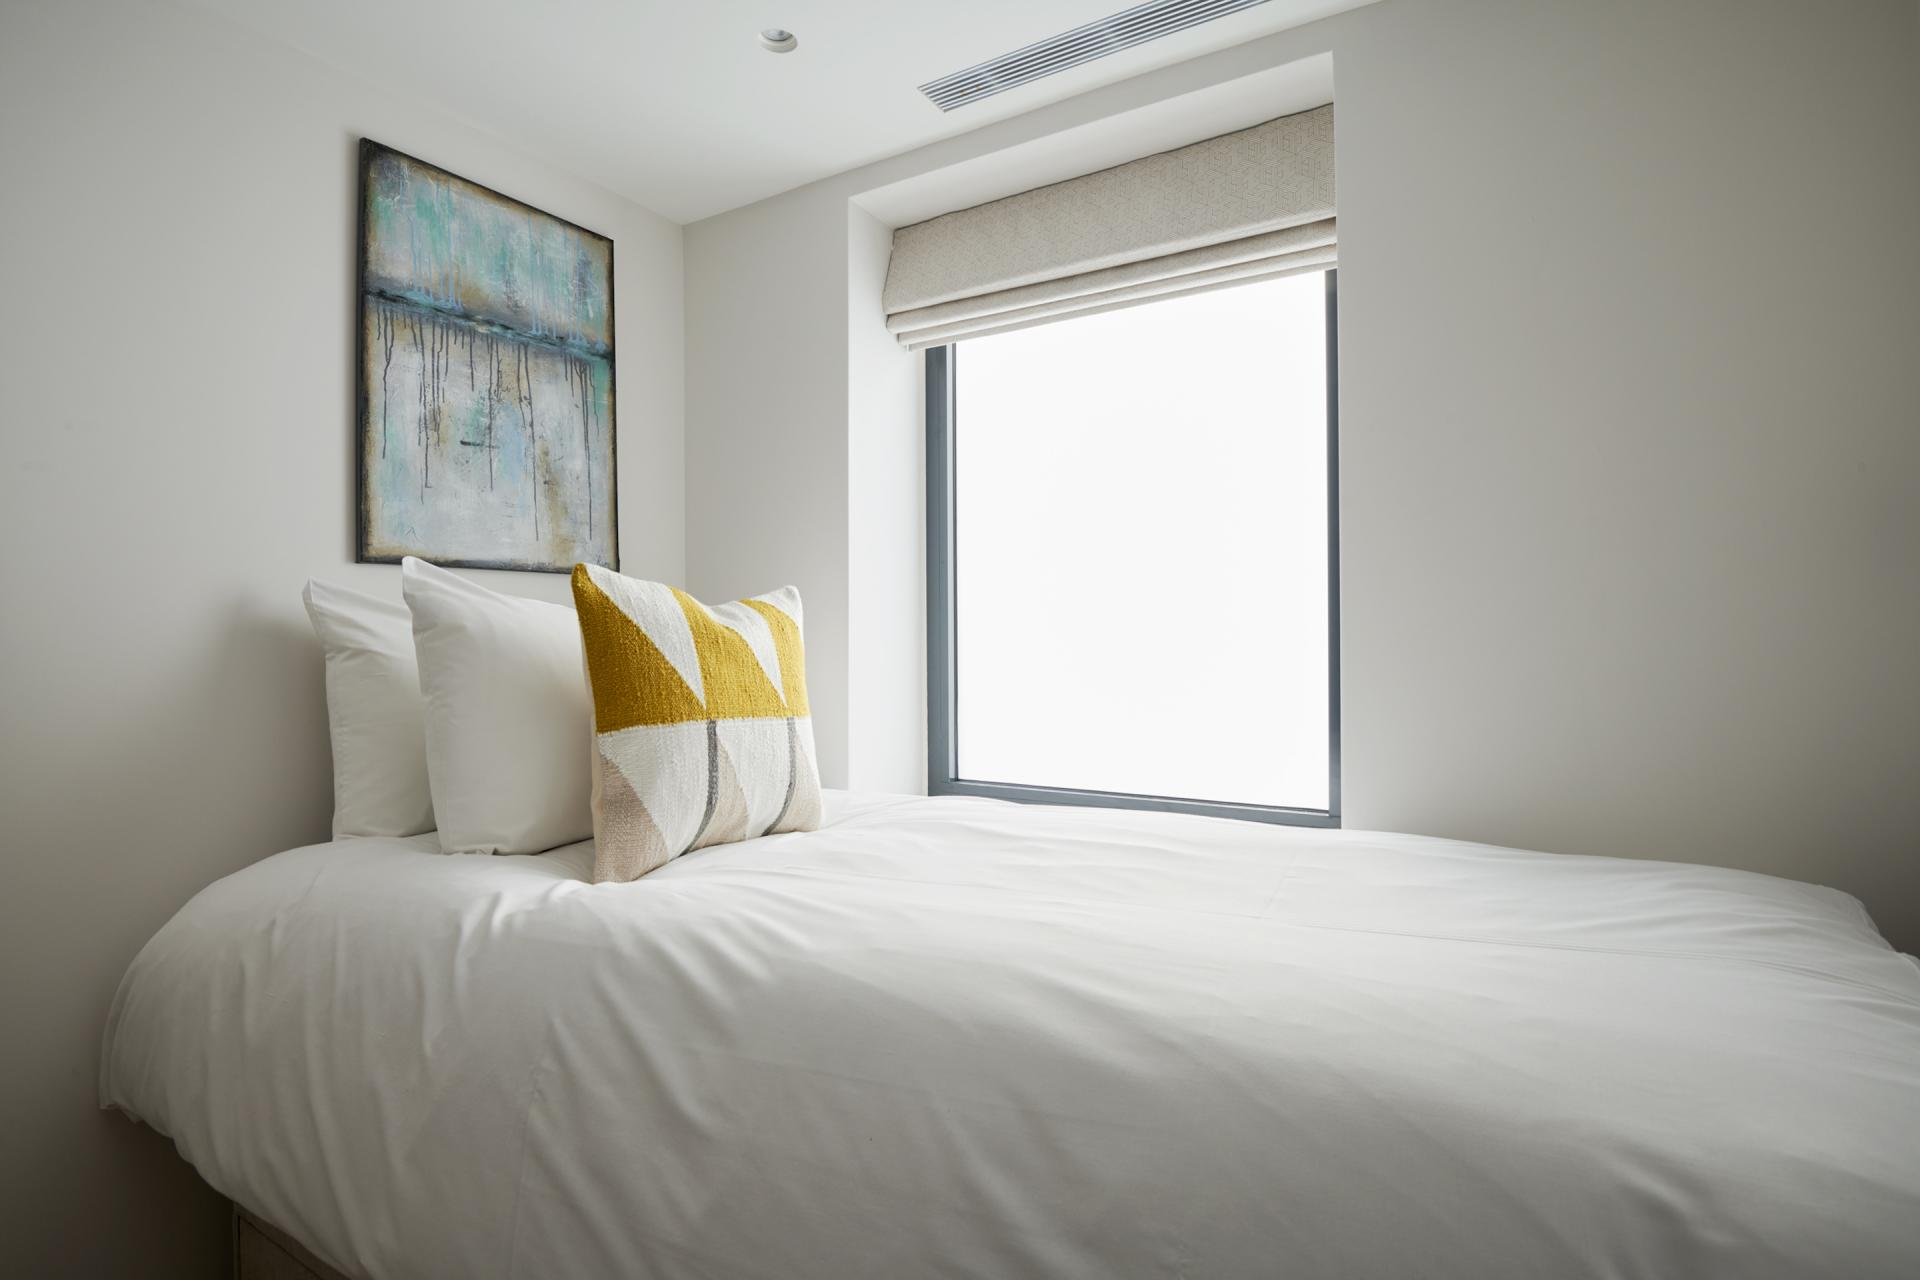 Single bed at Maddox Suites, Carnaby, London - Citybase Apartments